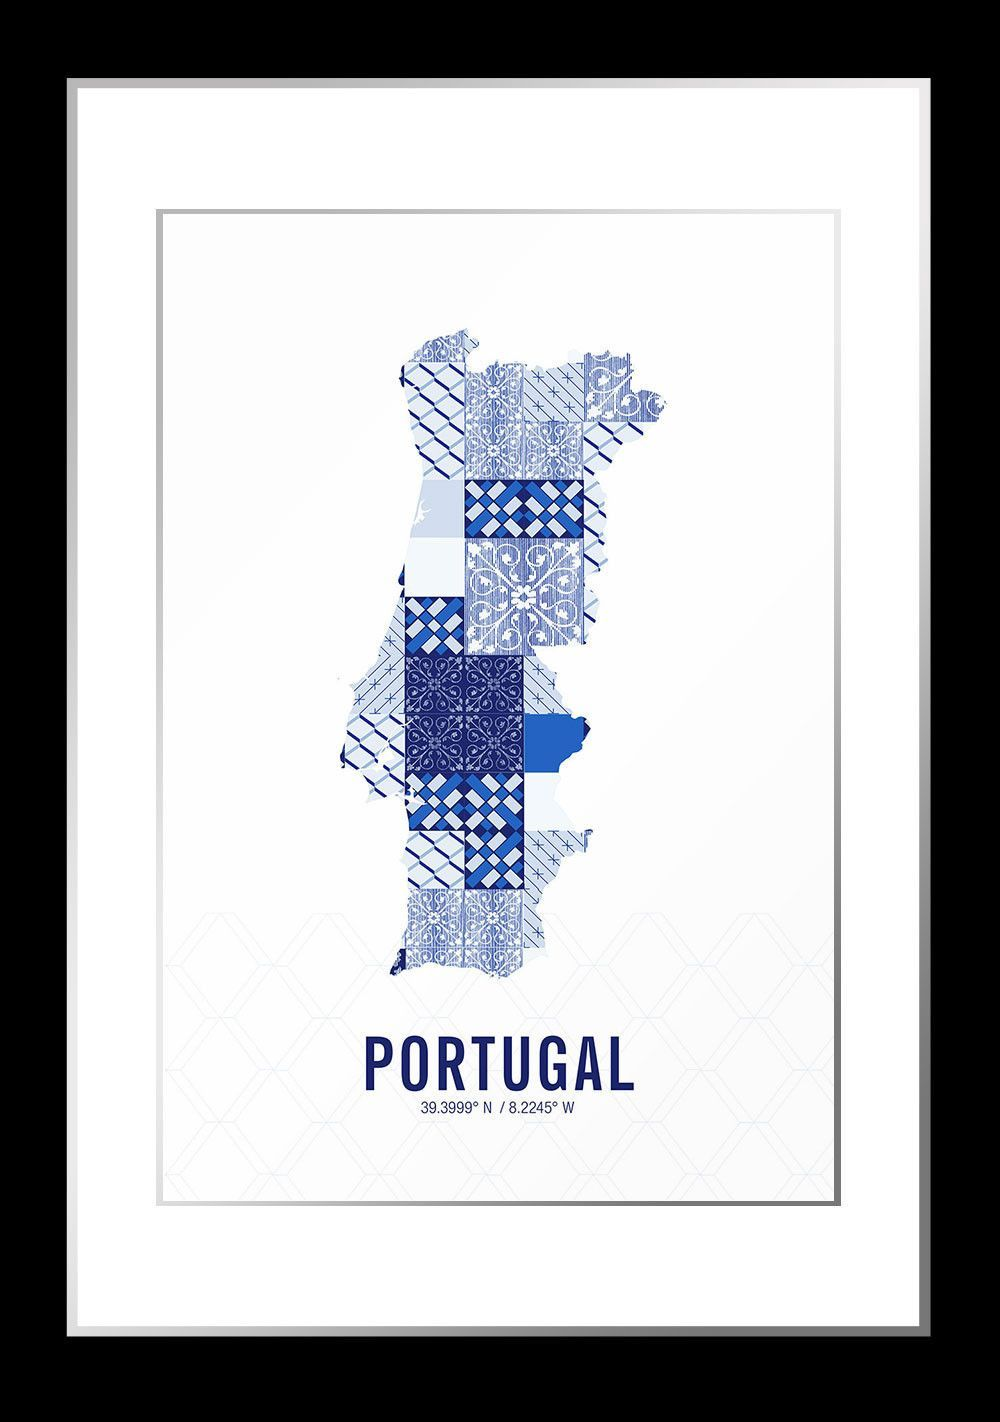 Portugal Map Print Products Portugal And Maps - Portugal map to print